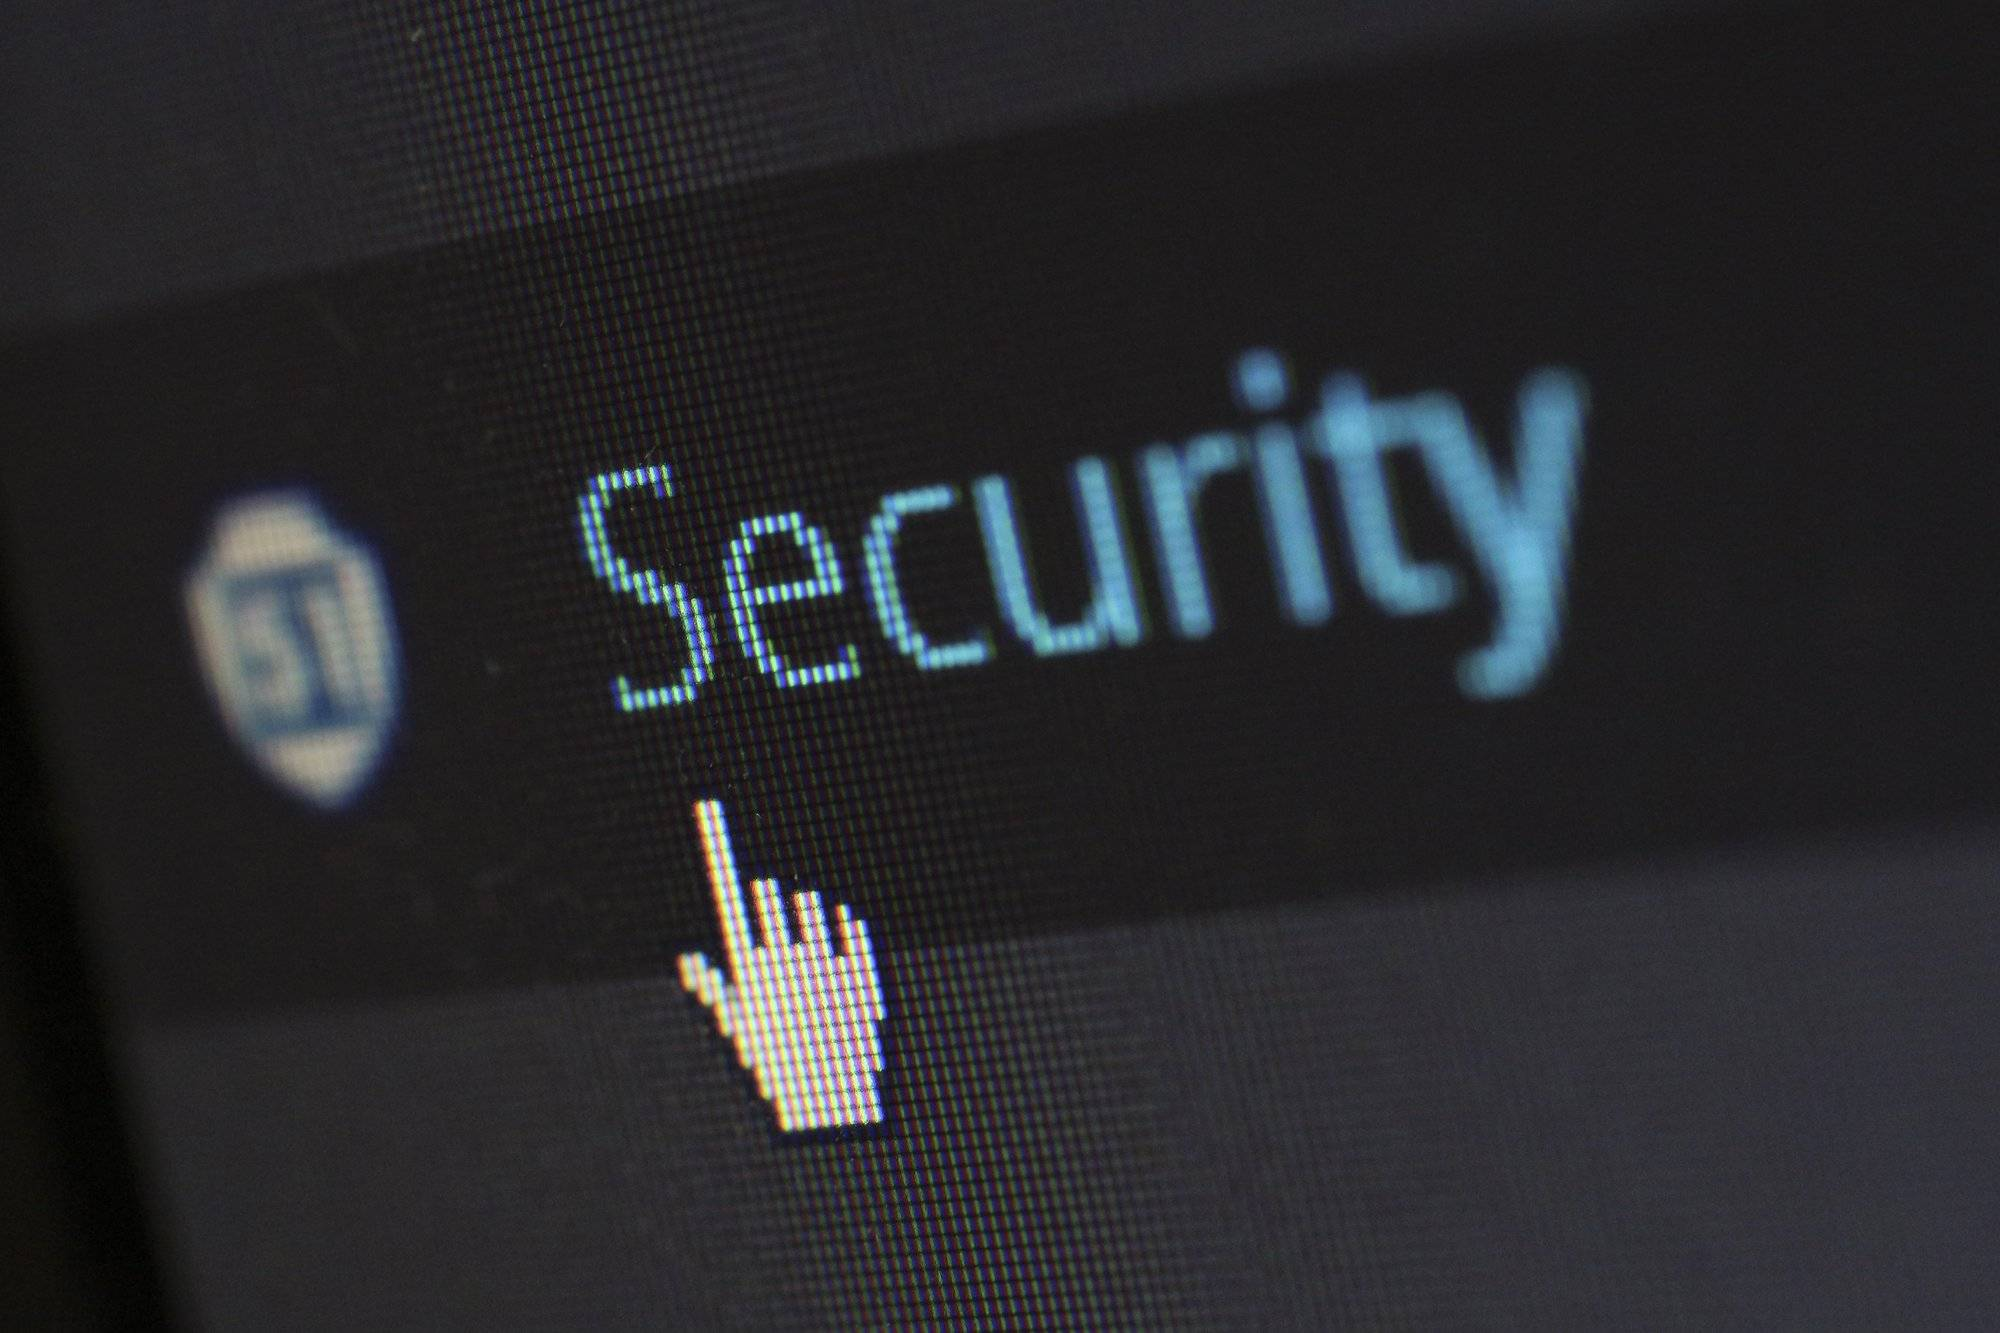 Website Security: Protecting Your Website